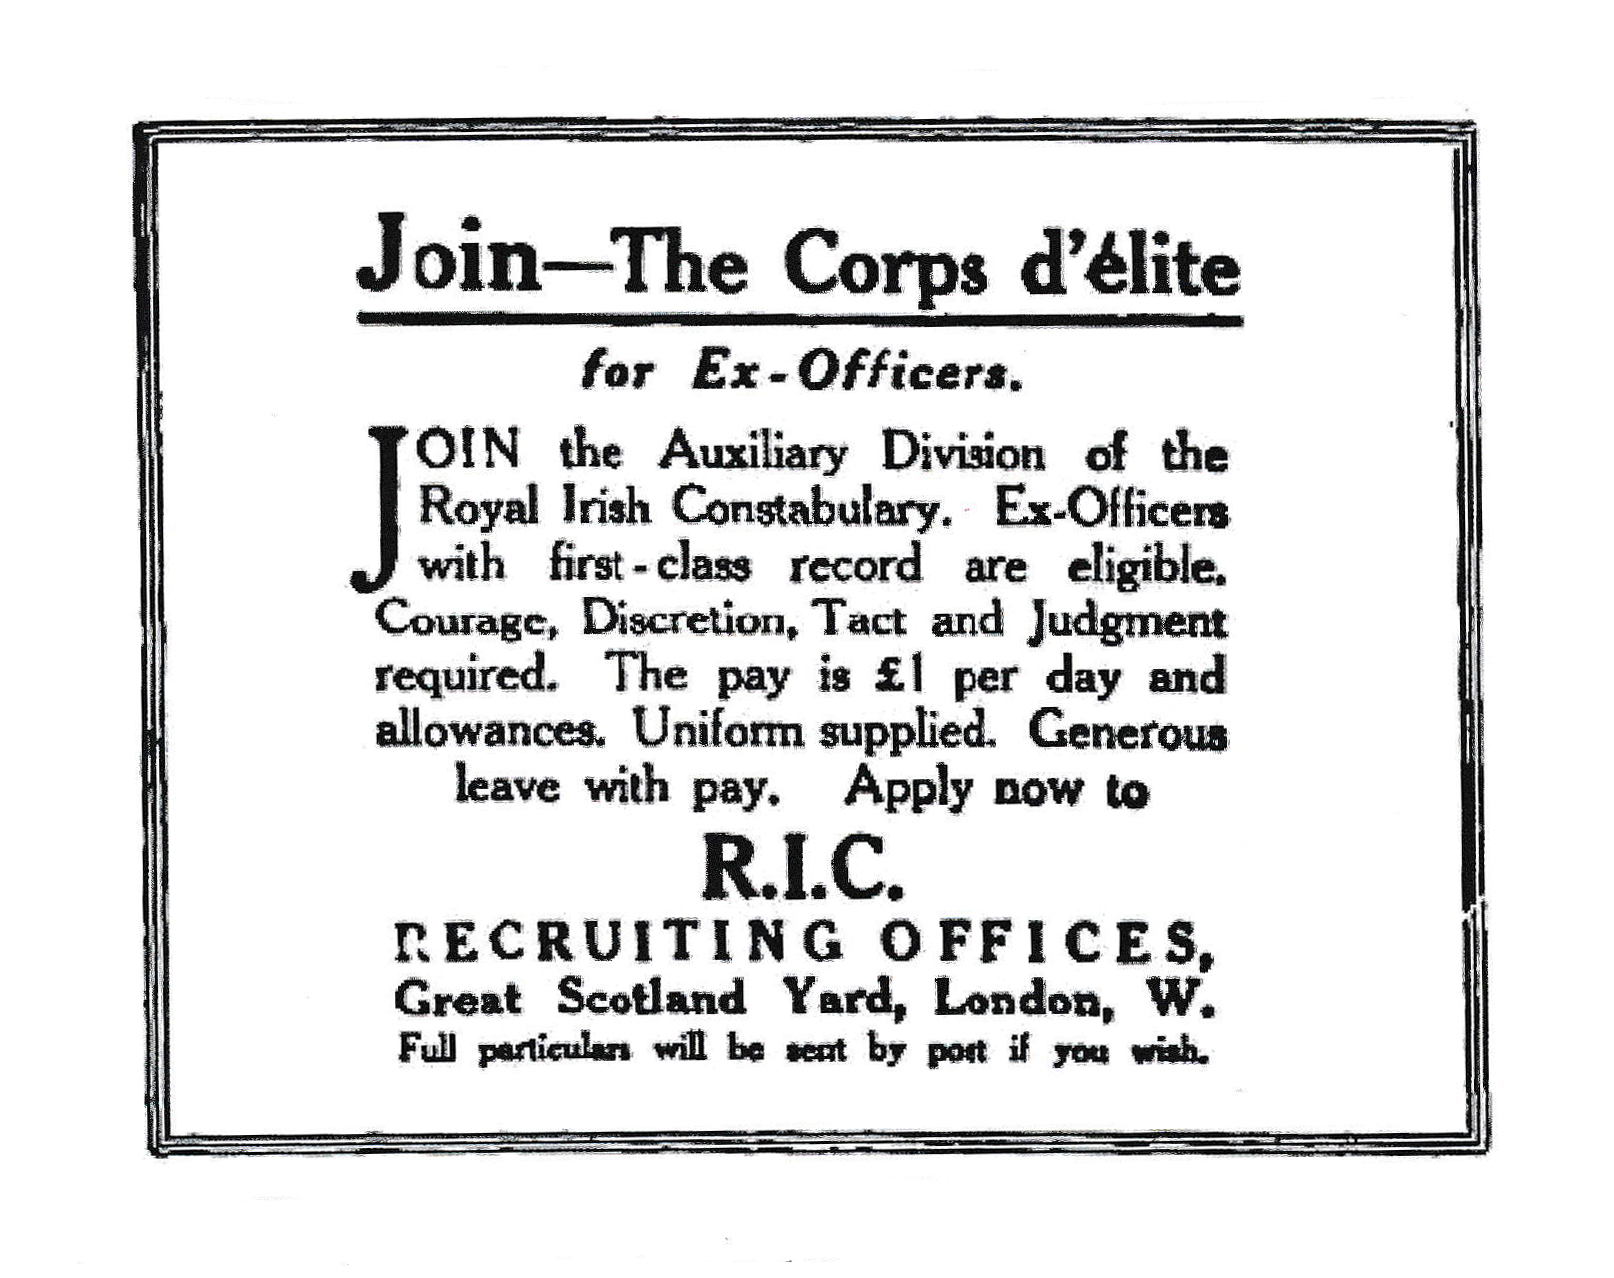 join-the-auxies-ad1920